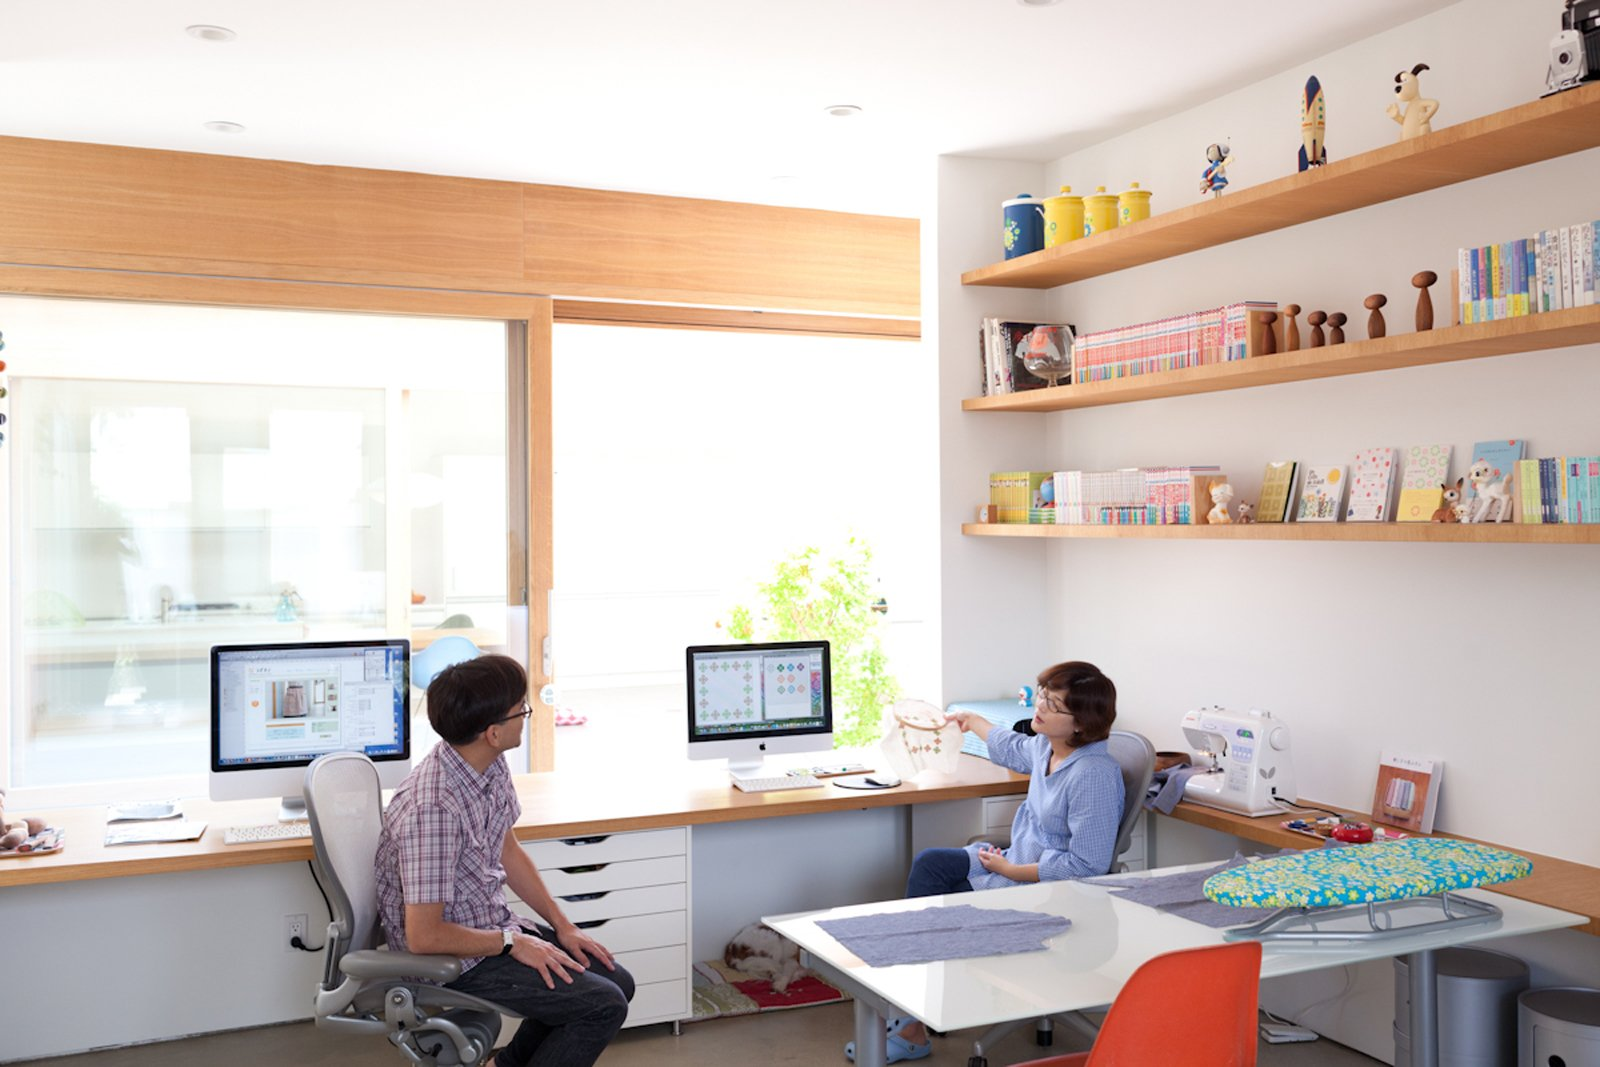 The pair of desks that Paul and Shoko work at in the office space look directly onto the courtyard. The concept for the design was to be able to see the sky from your seat at the desk.  Home Offices and Workspaces We Love by Matthew Keeshin from Looking Inward